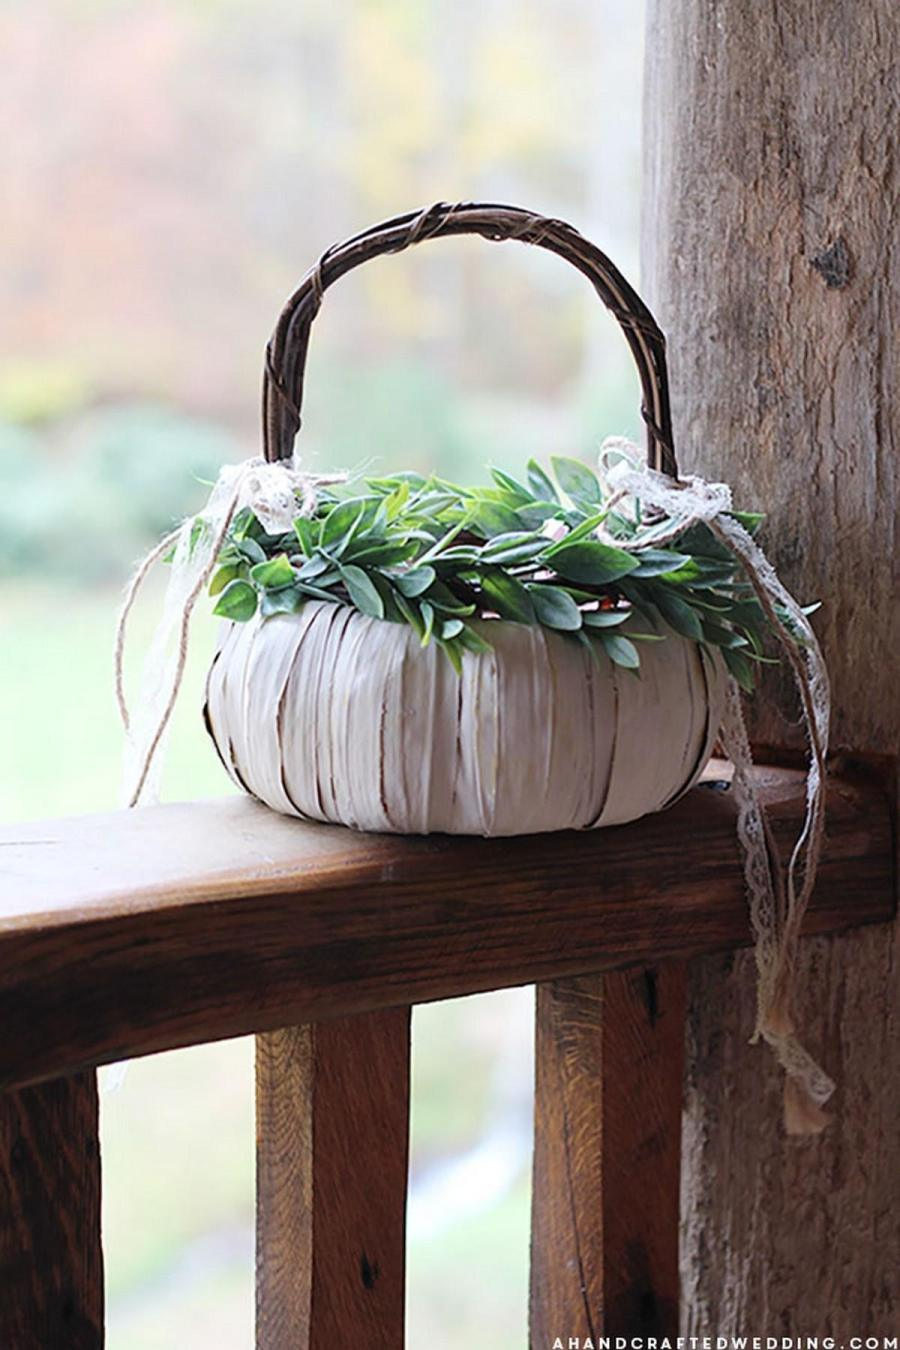 Flower girls add an adorable element to the wedding party, especially when they walk in front of the bride and scatter flower petals down the aisle. Keeping with tradition, decorated baskets make the perfect accessory for them to carry.